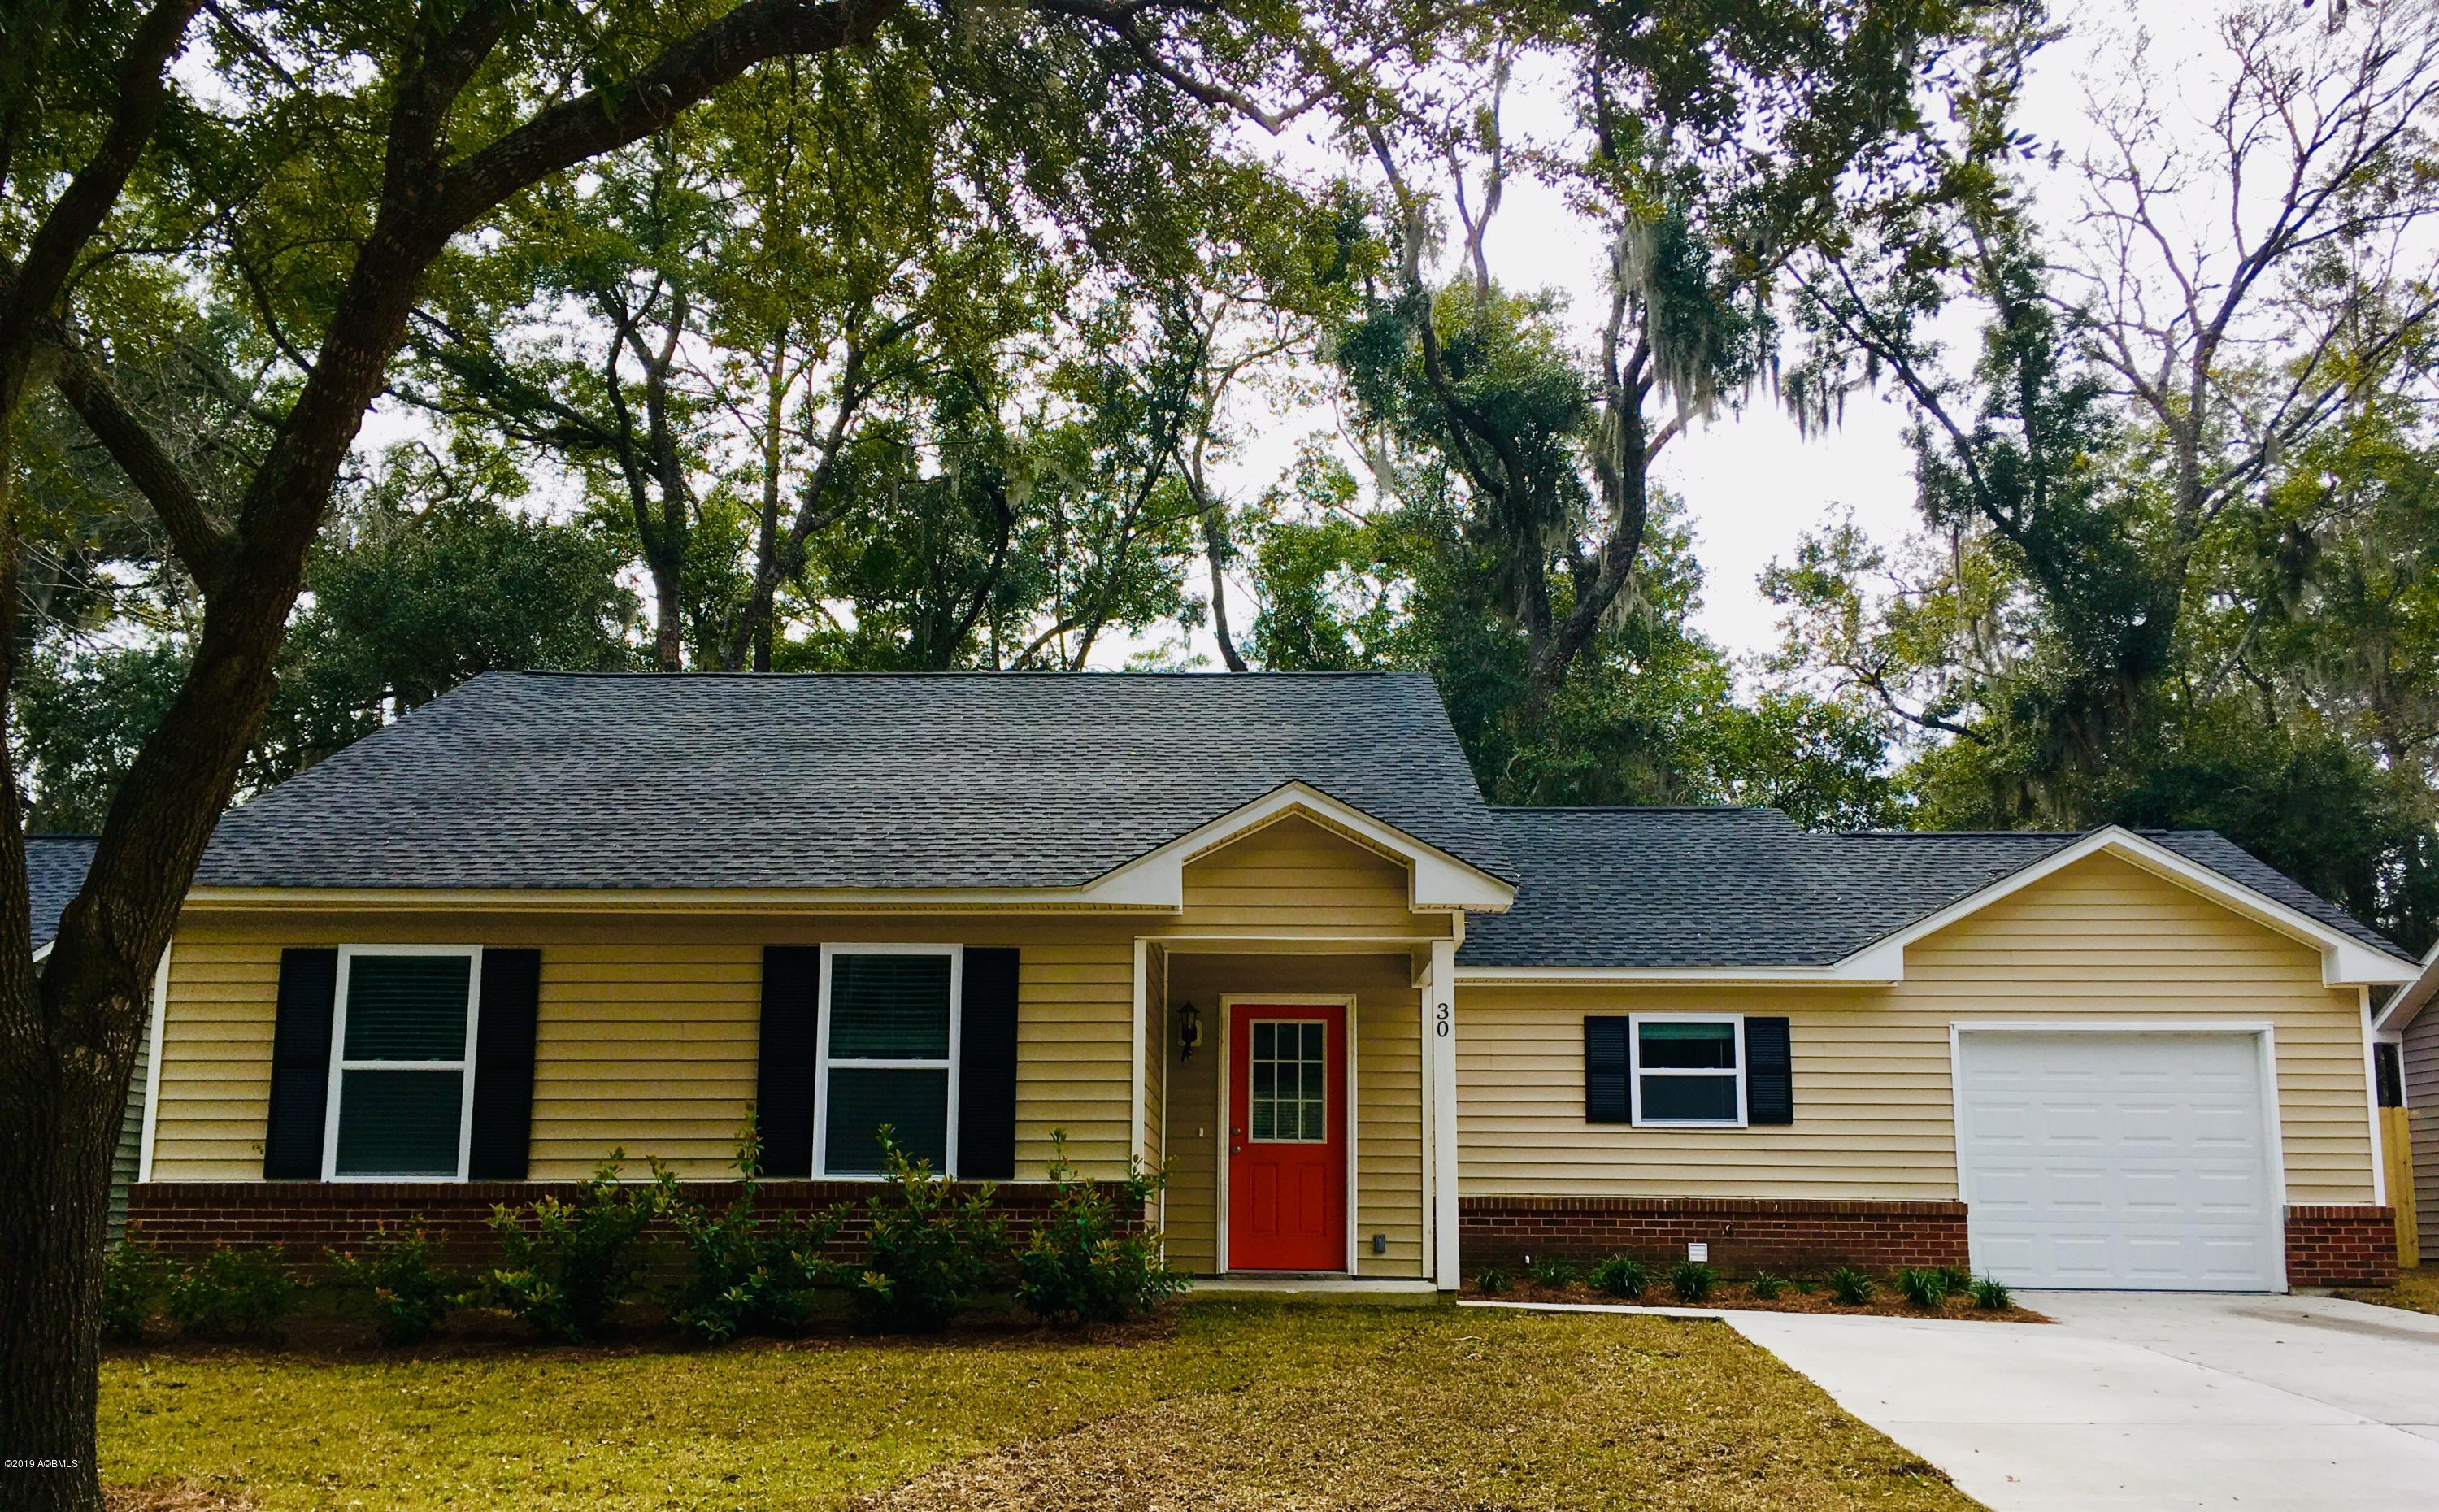 Photo of 30 Brindlewood Drive, Beaufort, SC 29907